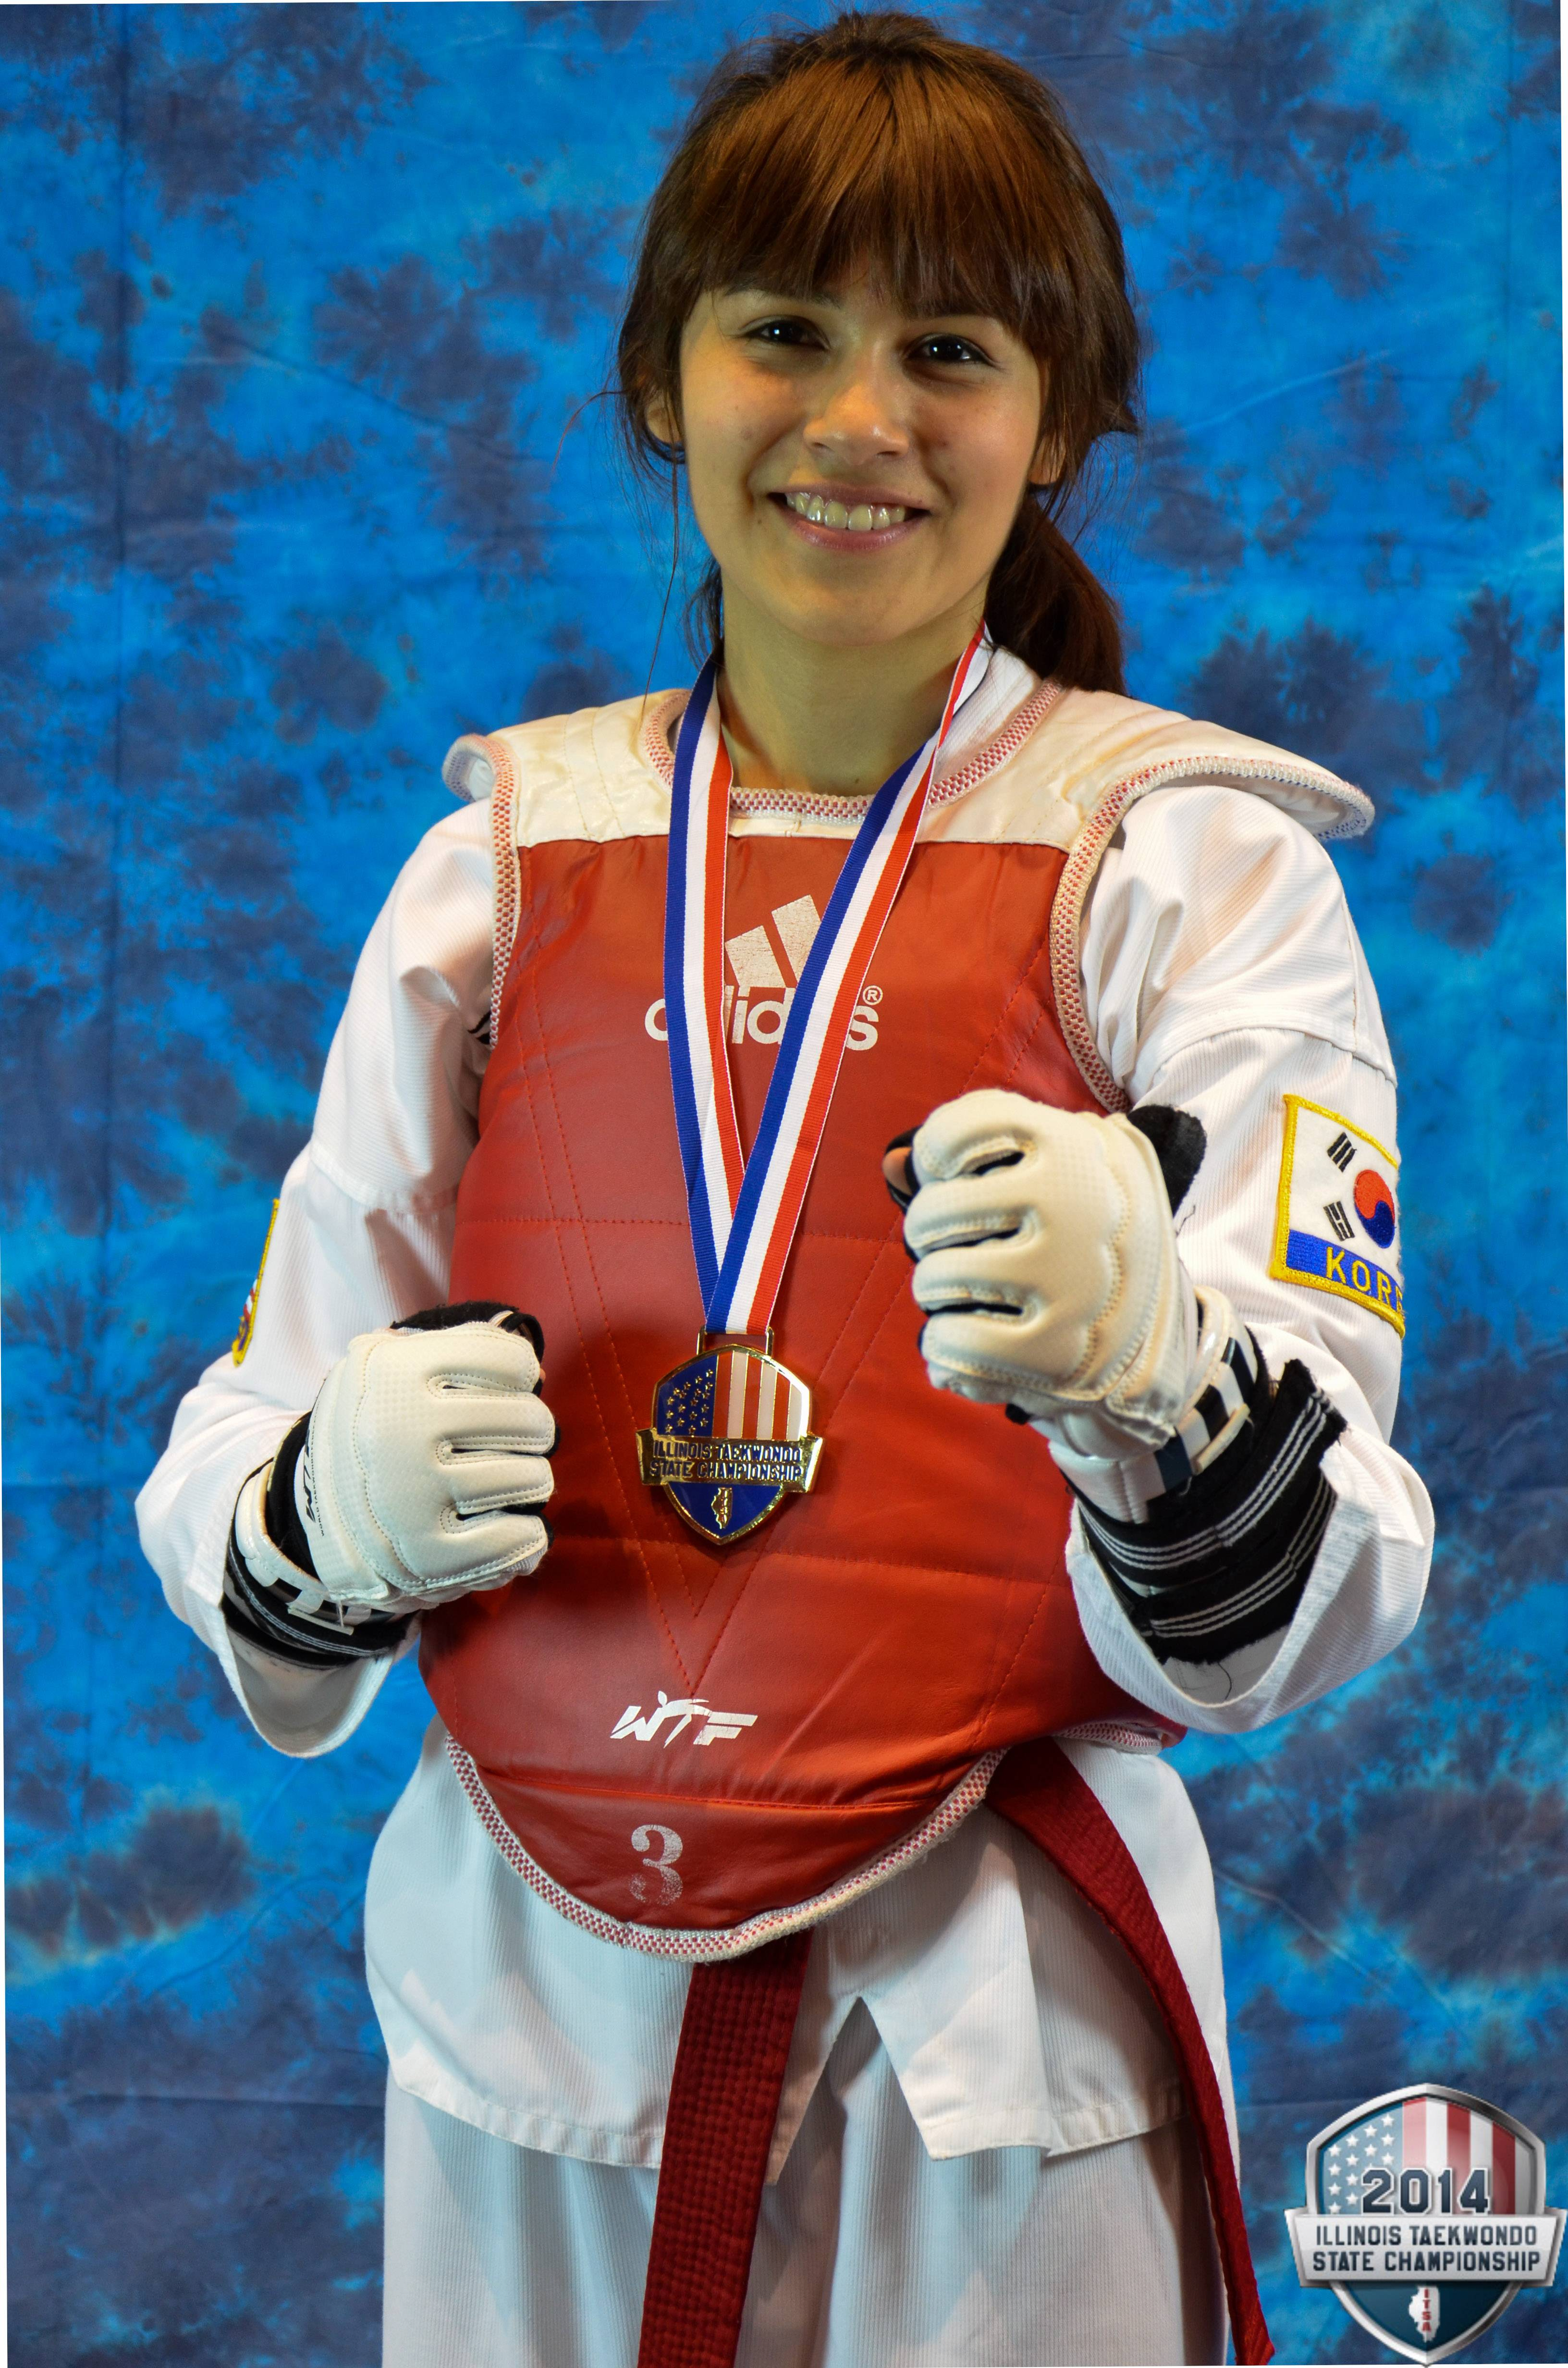 Nancy Cabrera after her win at the 2014 Illinois Taekwondo State Championship and earned her a spot at the USA Taekwondo National Championships.  IBRM Imagery